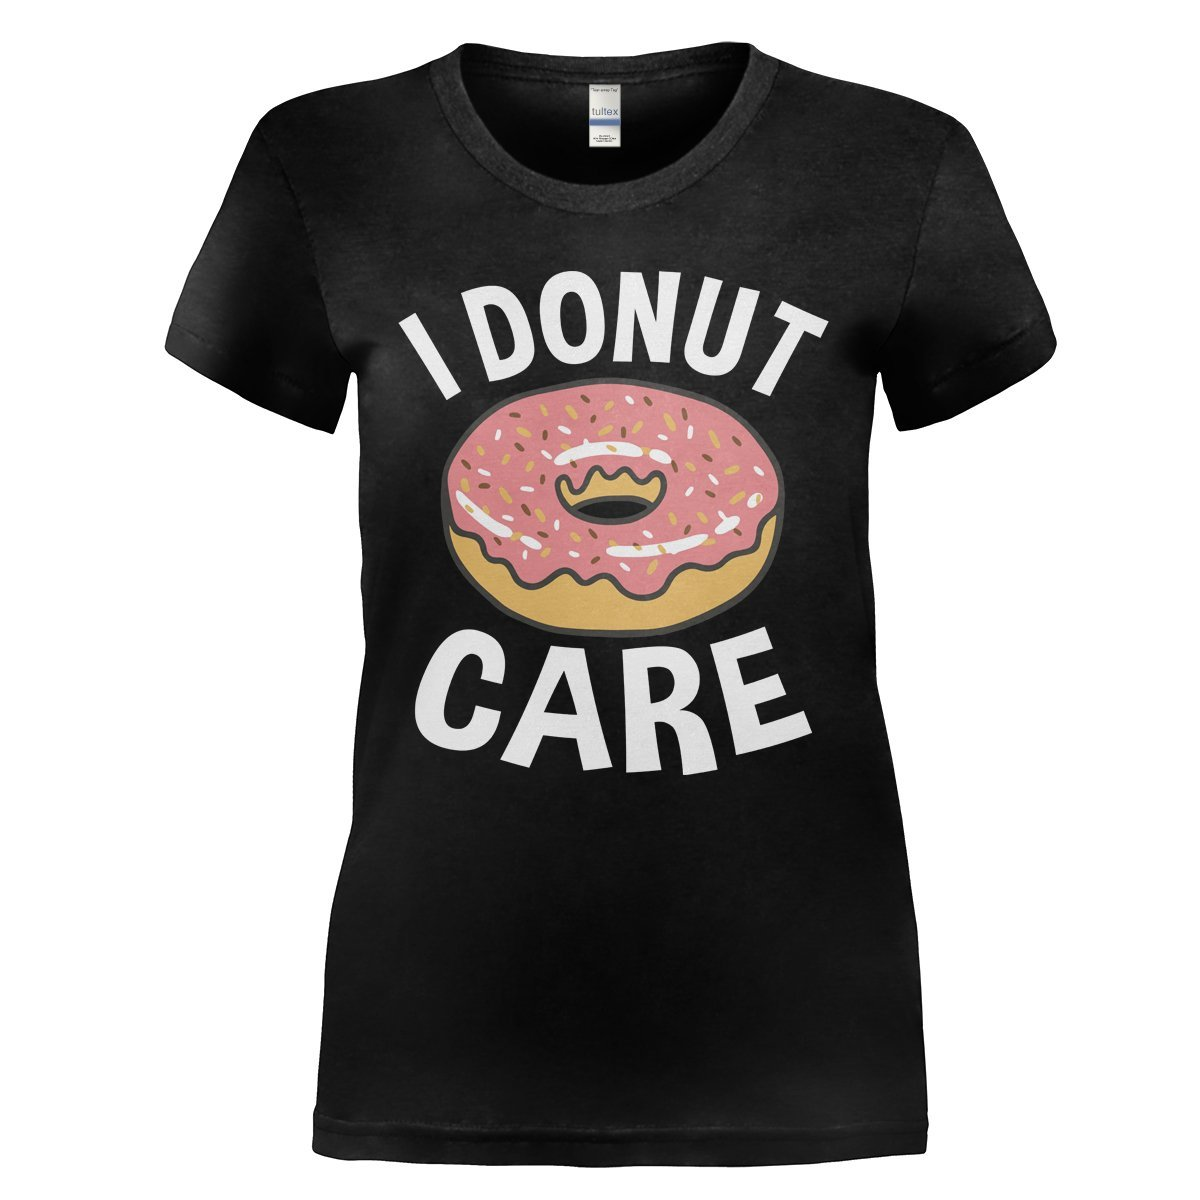 4558142f2 I Donut Care T-Shirt & Hoodie | I Love Apparel